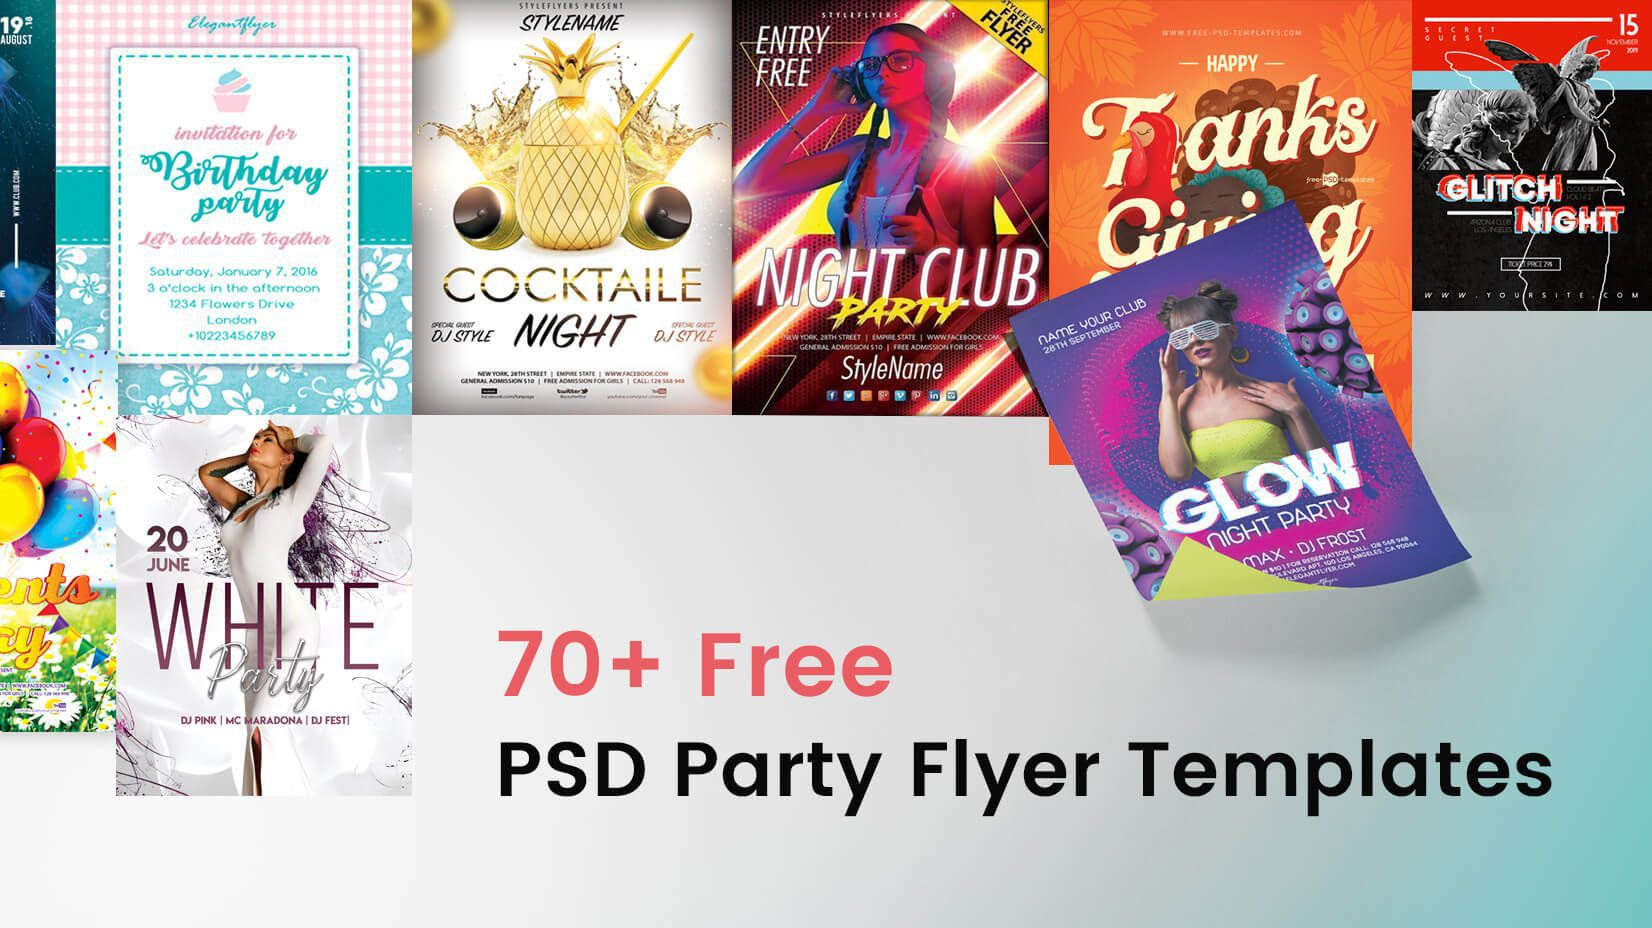 007 Outstanding Party Flyer Template Free Photoshop Example  Birthday Psd Masquerade -Full